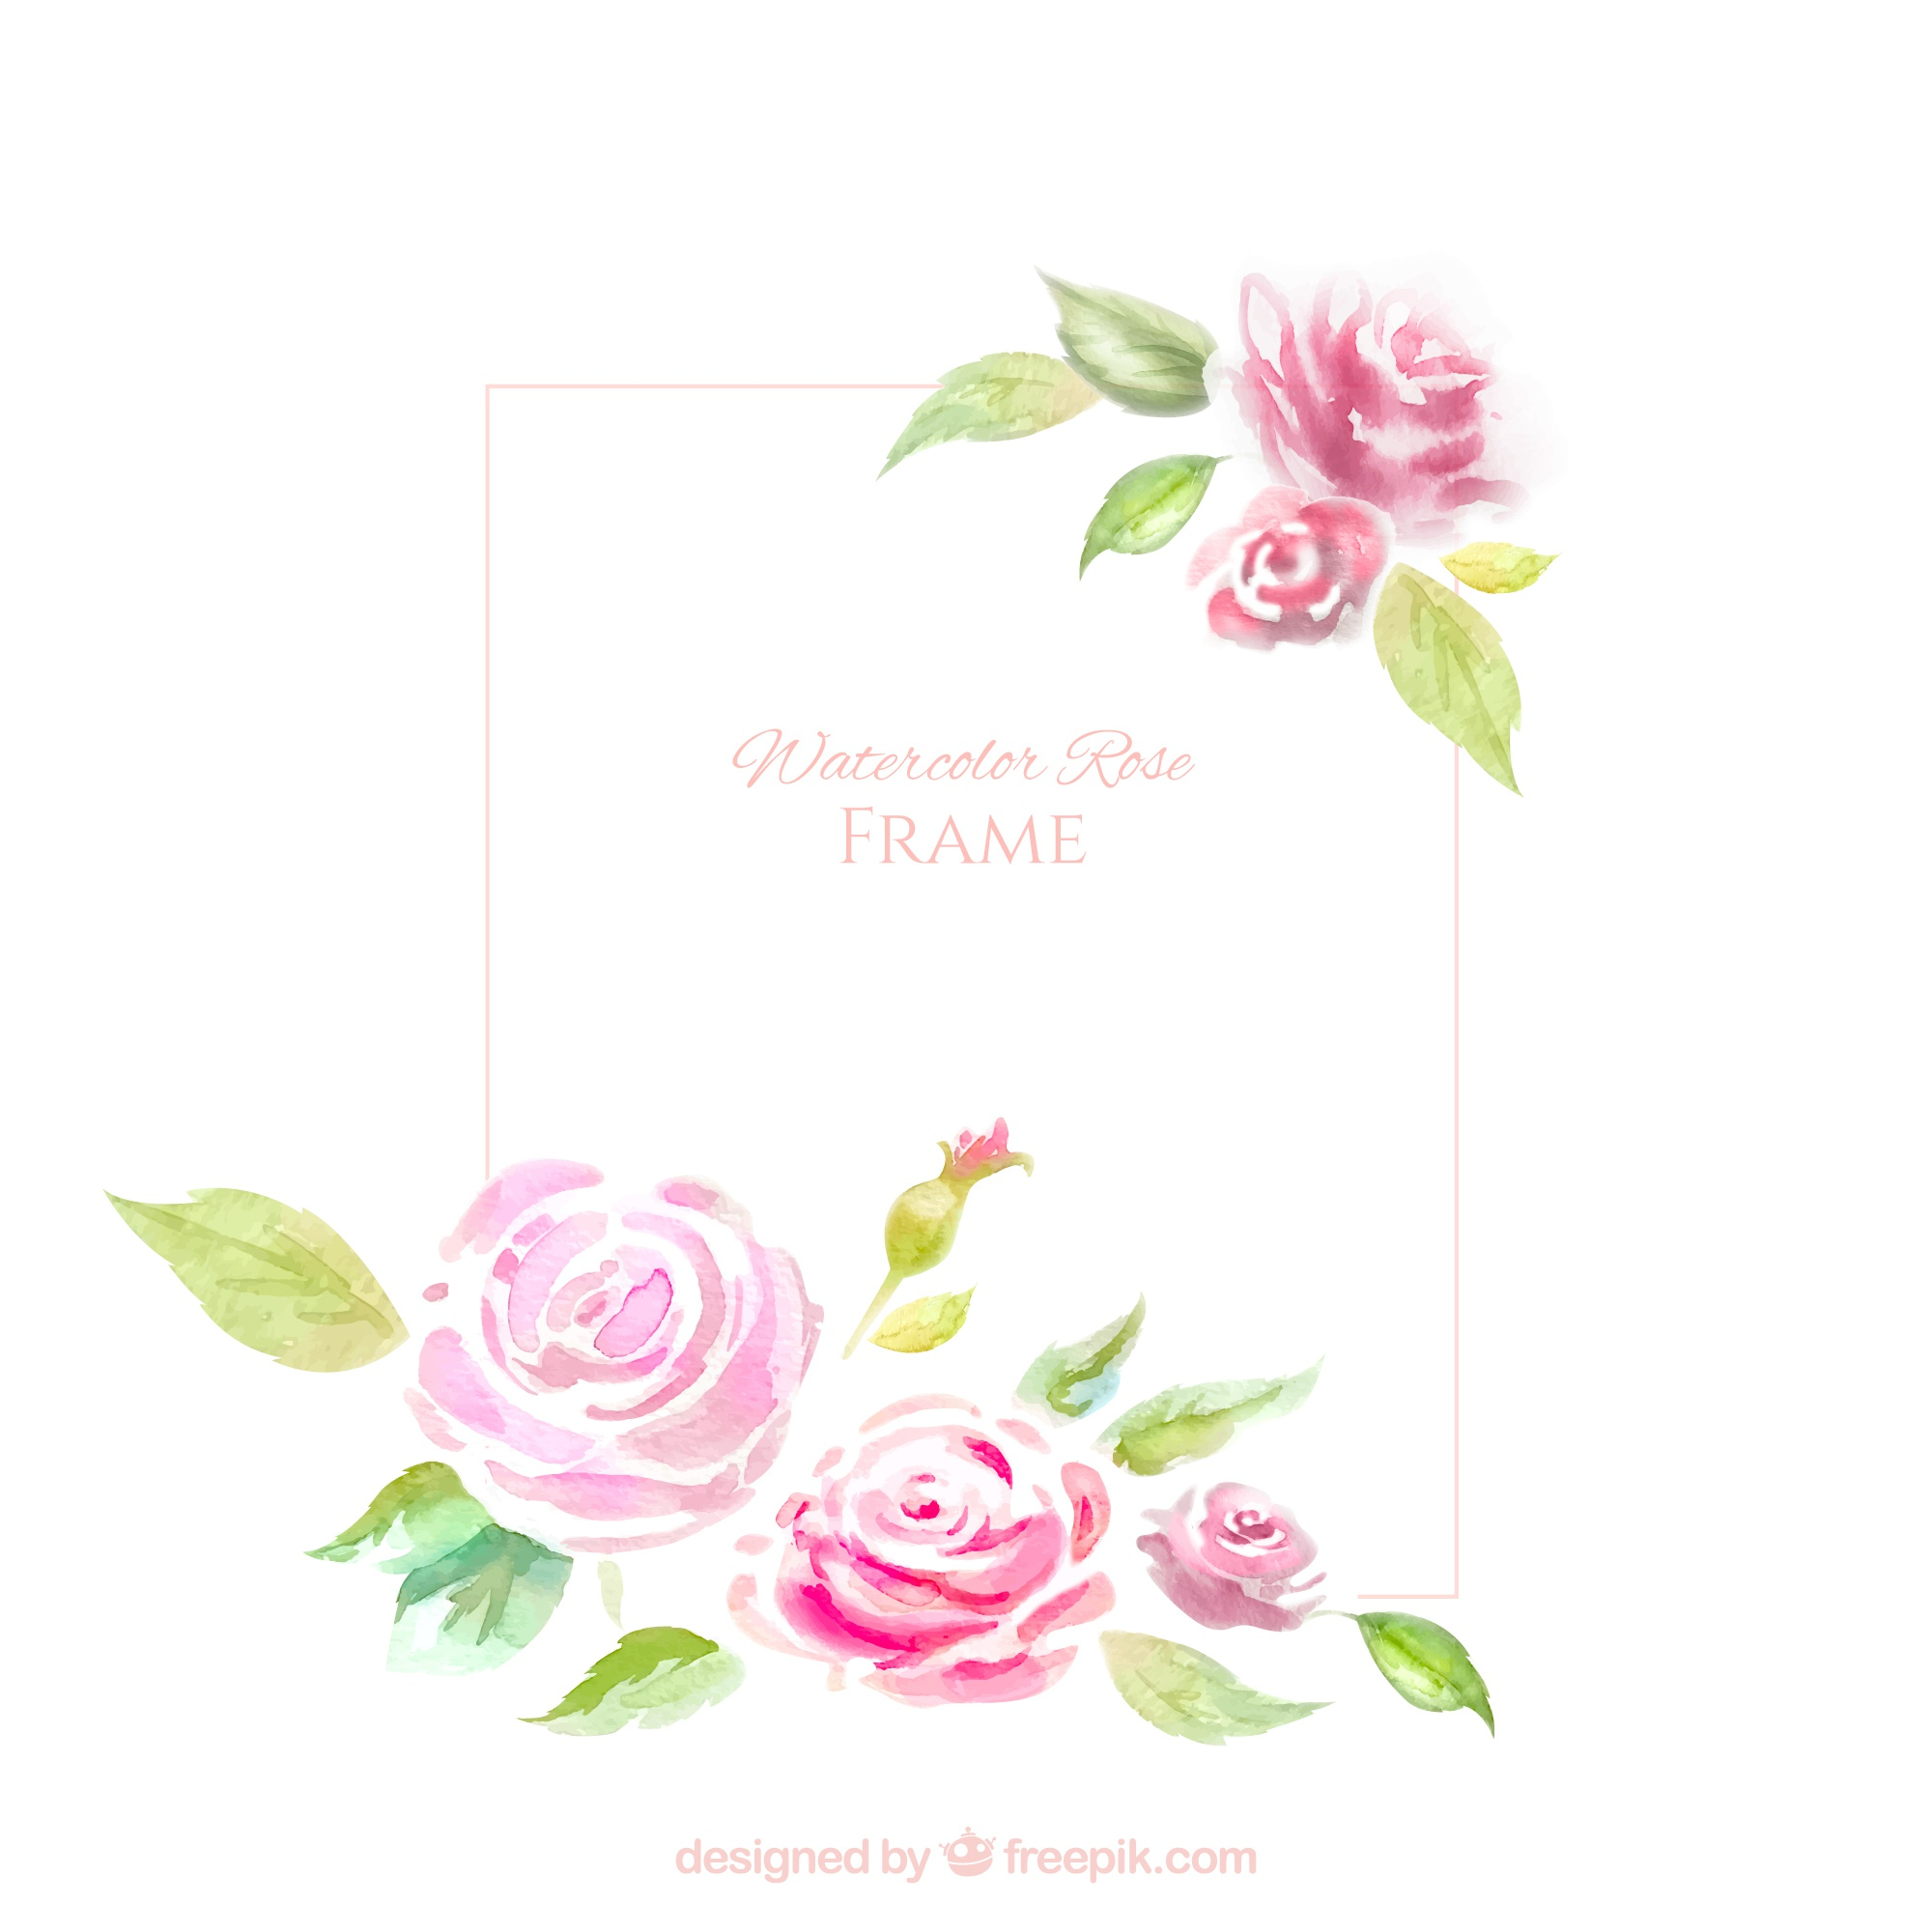 Decorative frame with watercolor roses